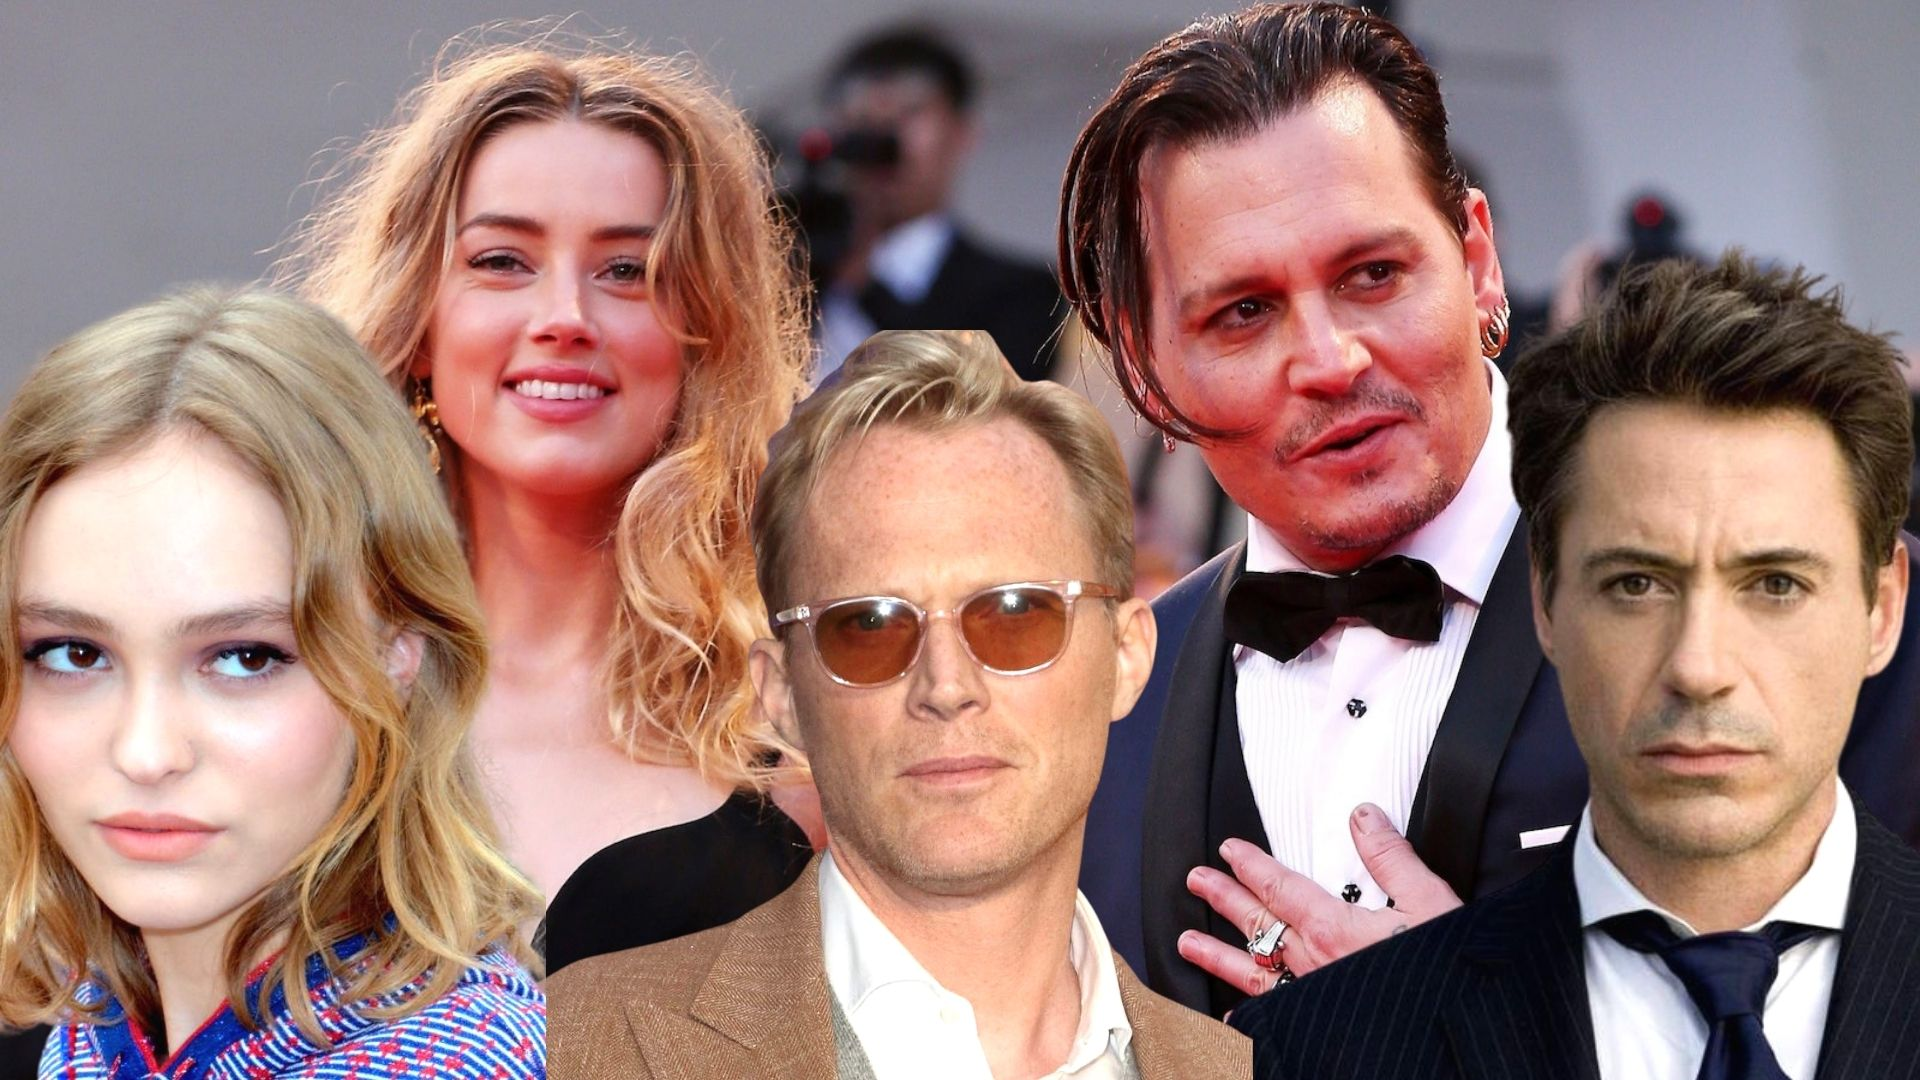 Johnny Depp And Amber Heard Controversy